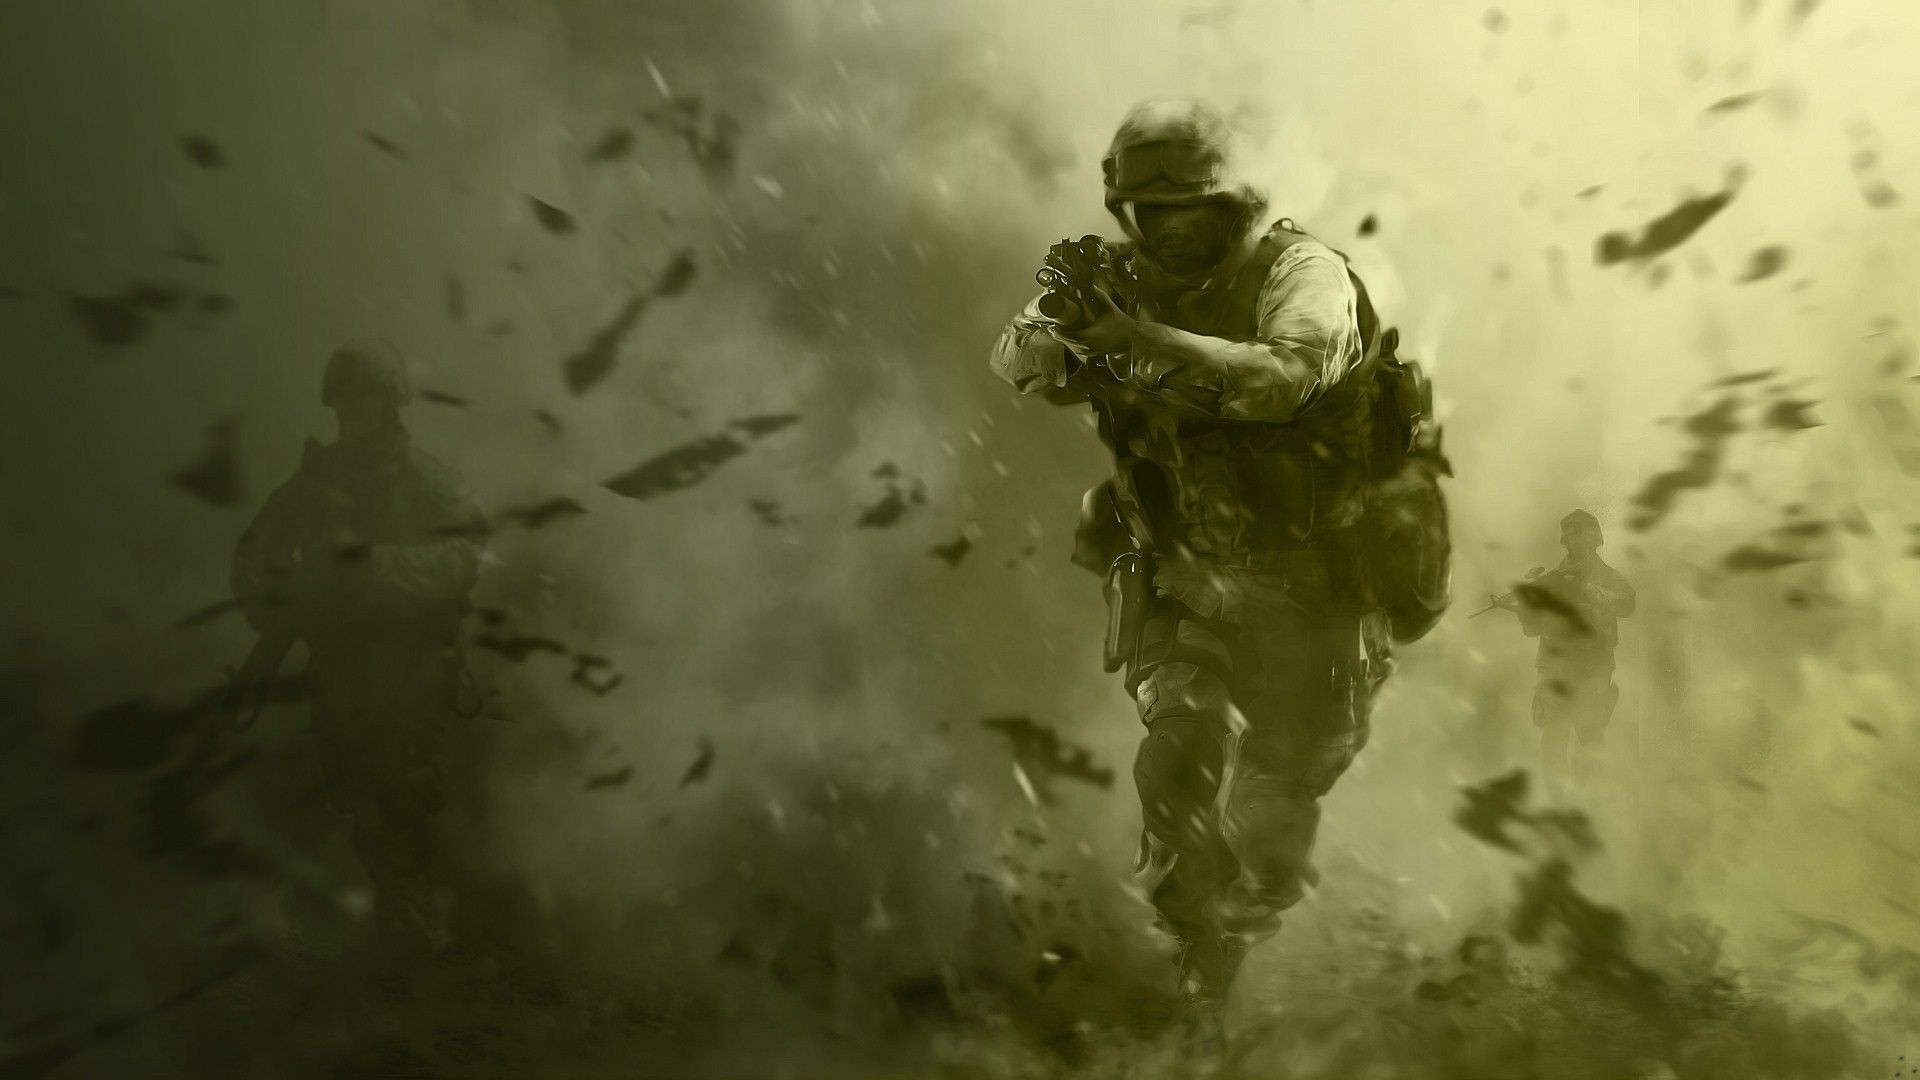 1920x1080 Cool Army Wallpapers – army background Is Cool Wallpapers